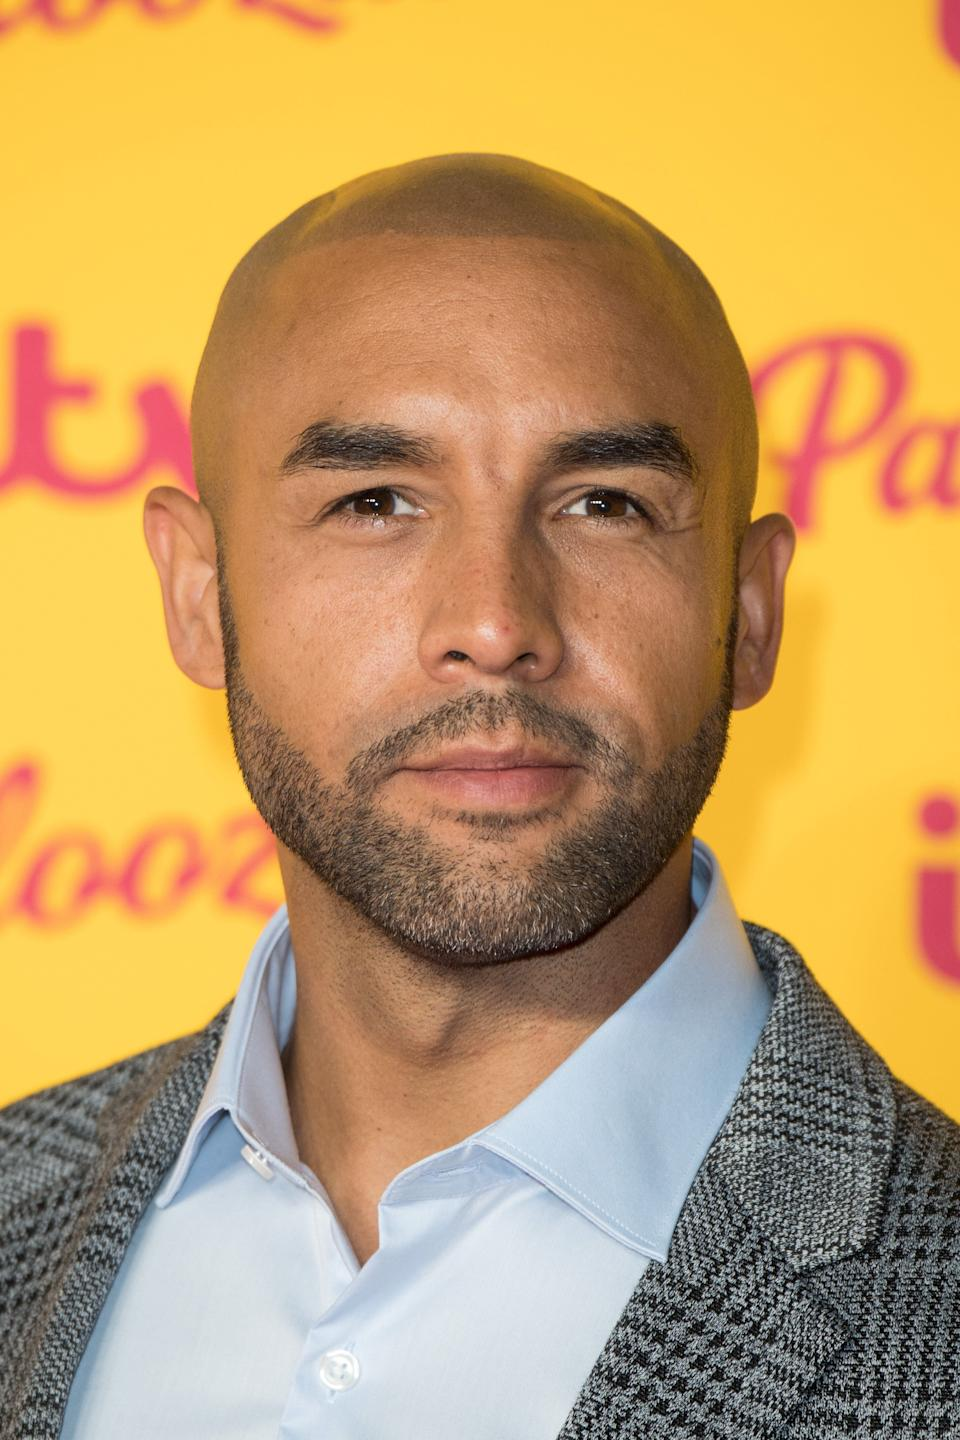 Alex Beresford pictured in 2018 (Photo: Jeff Spicer via Getty Images)